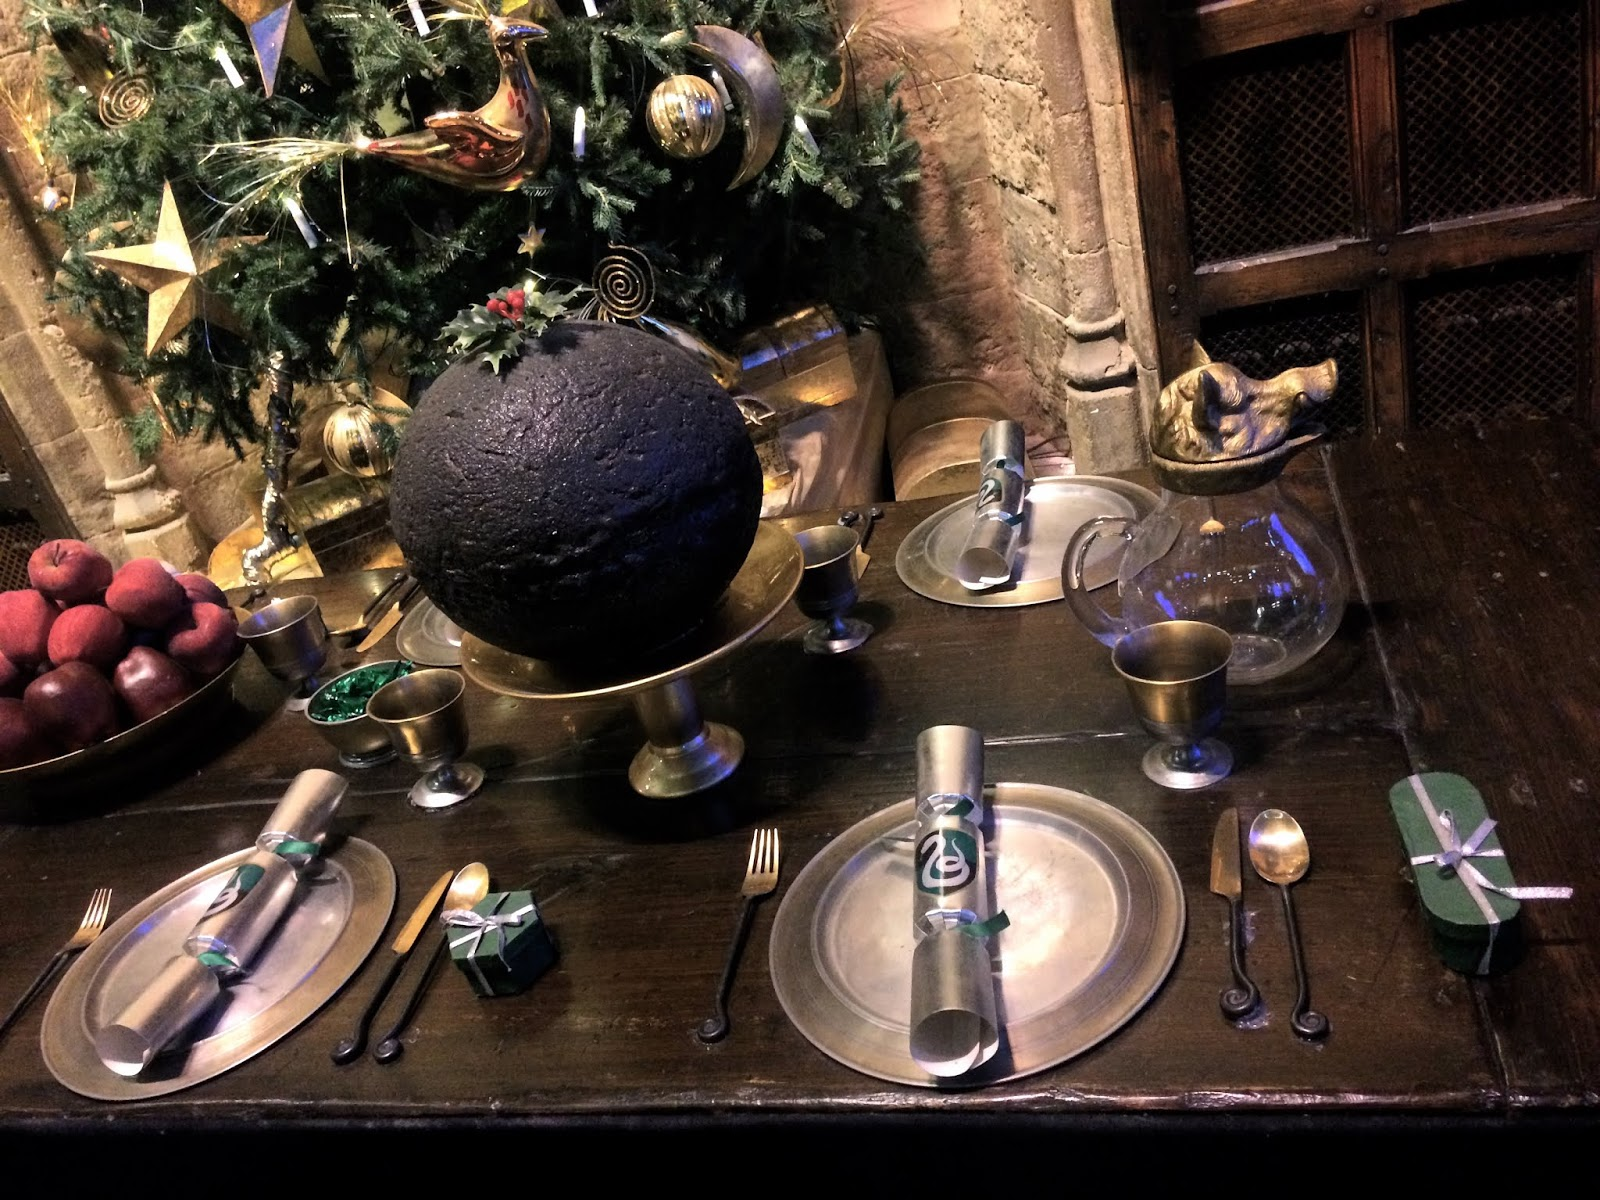 Slytherin Christmas table settings at Hogwarts, in the Great Hall